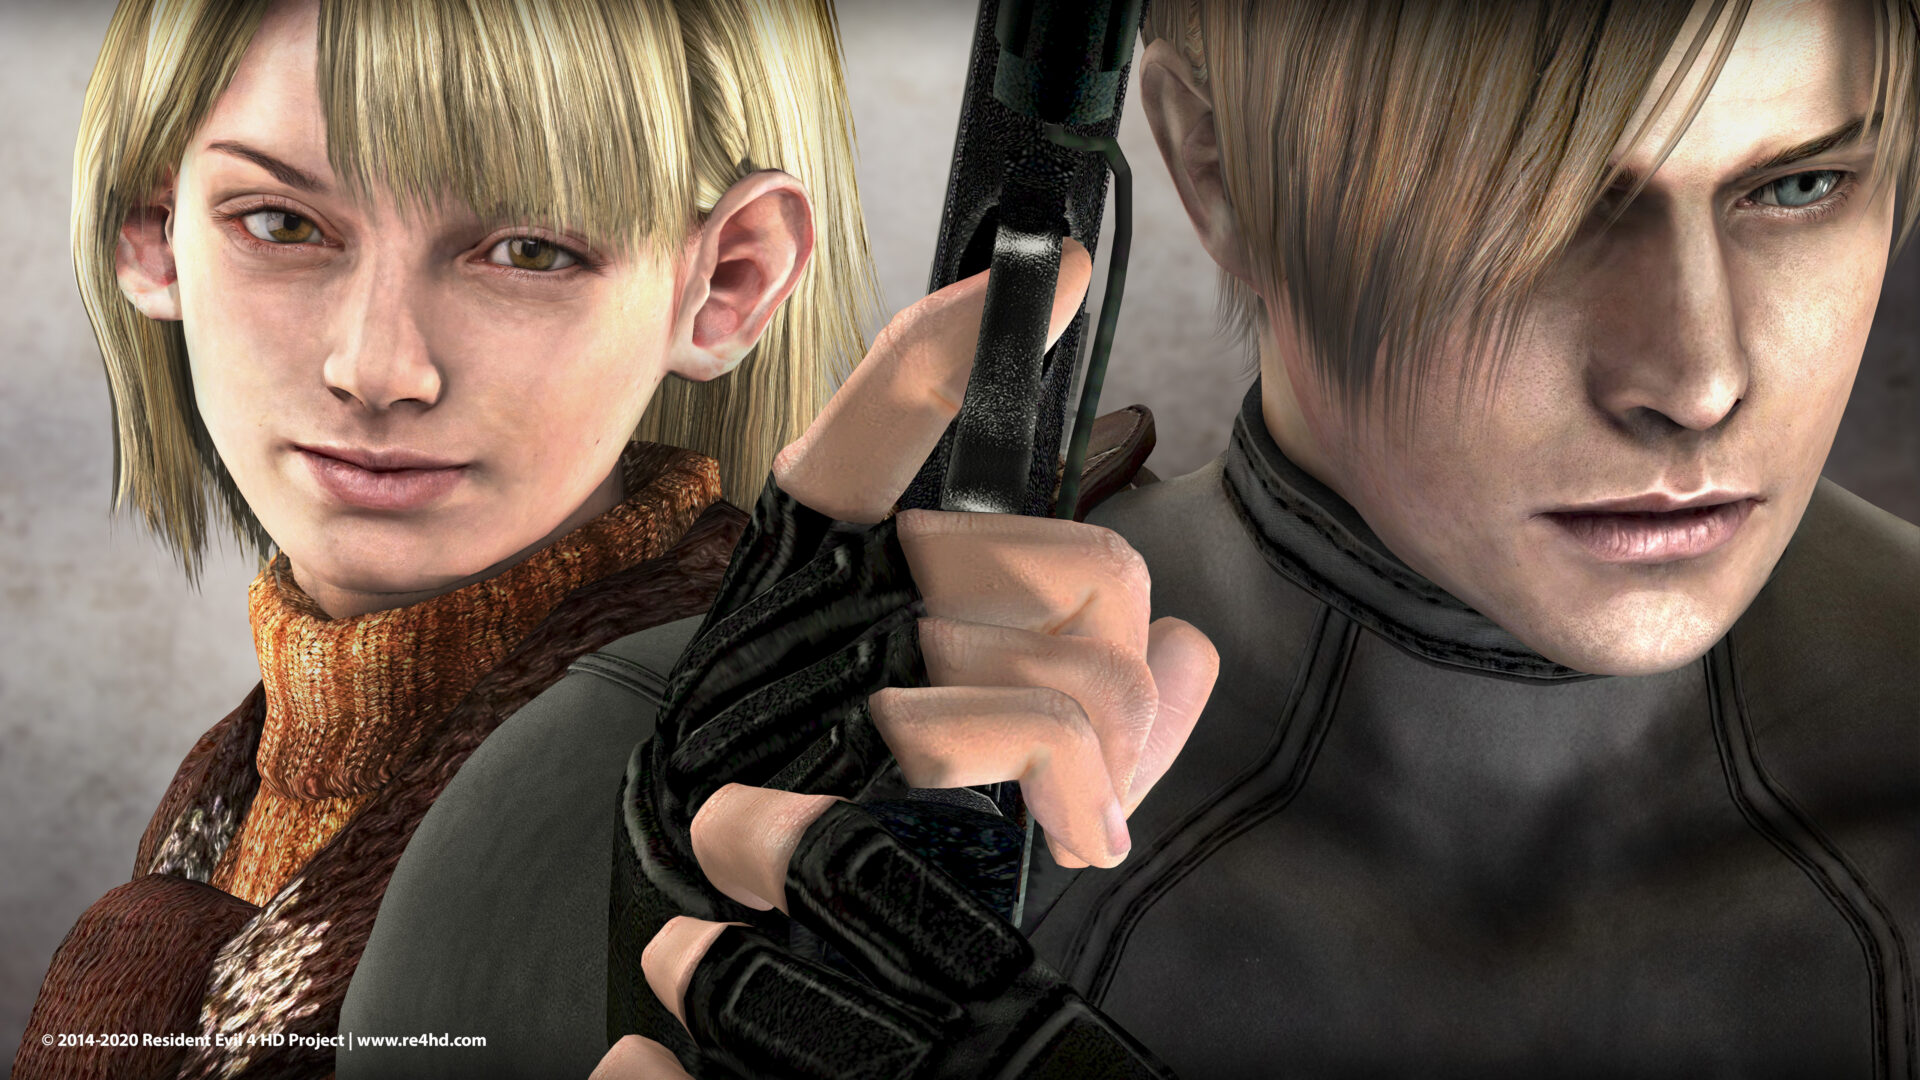 Chapter 4 Final Comparison Images Resident Evil 4 Hd Project